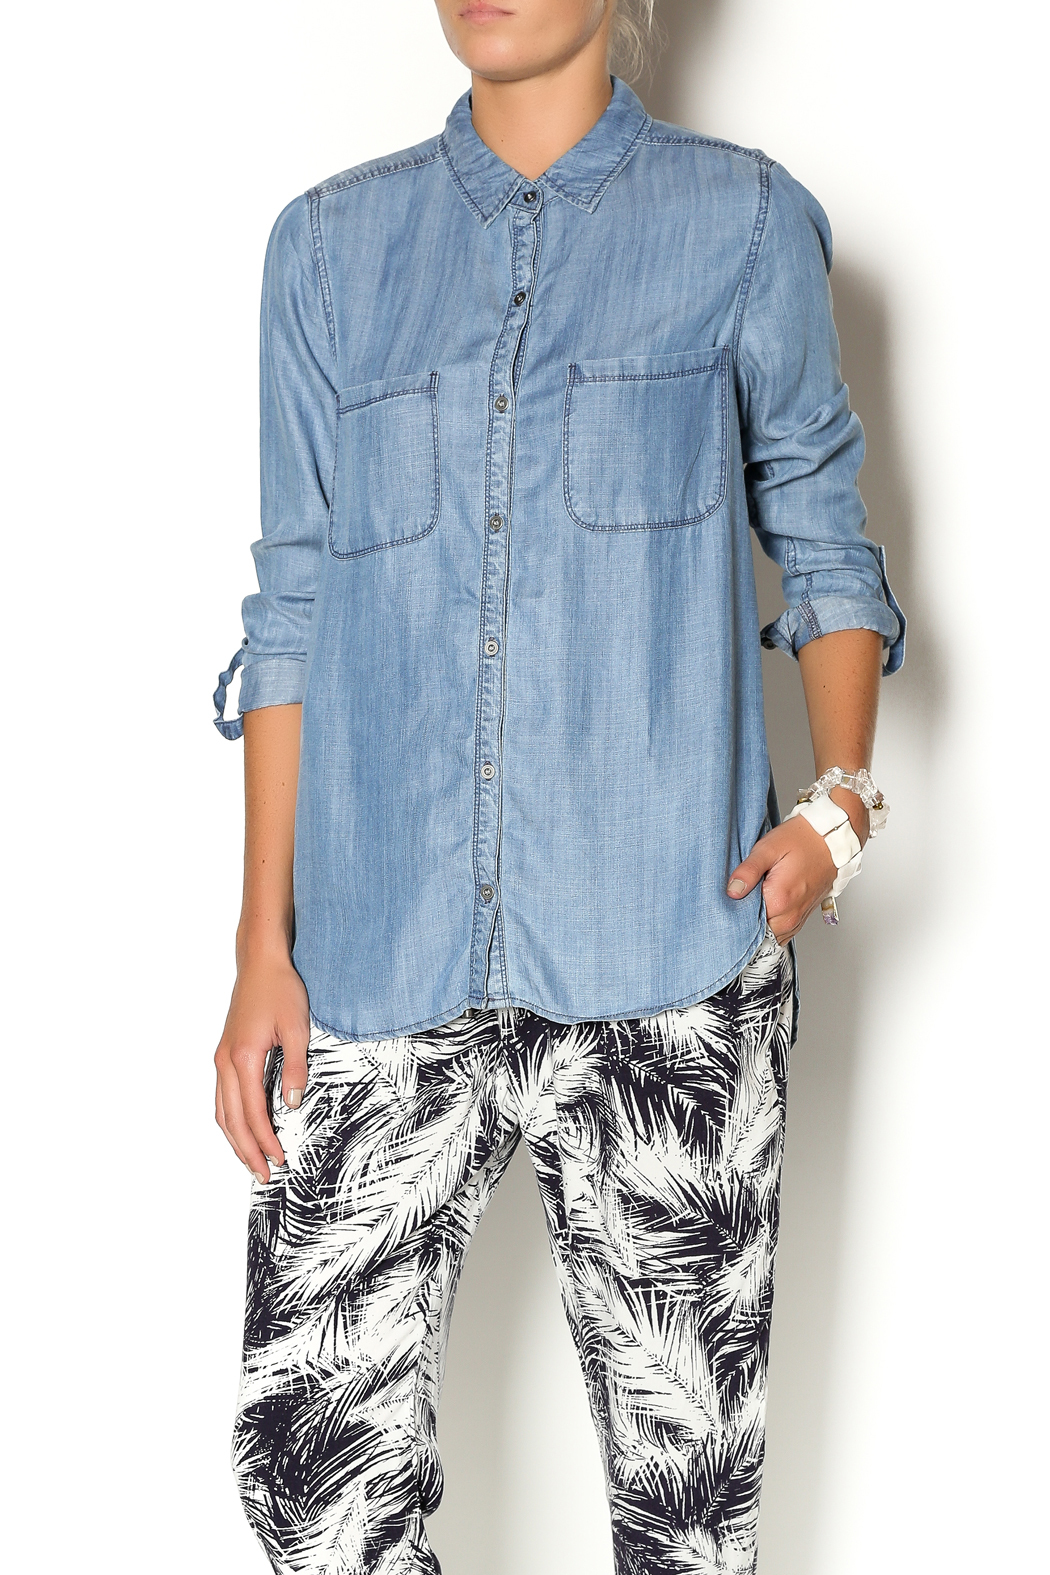 Staccato Tencel Shirt from Utah by Q Clothing — Shoptiques